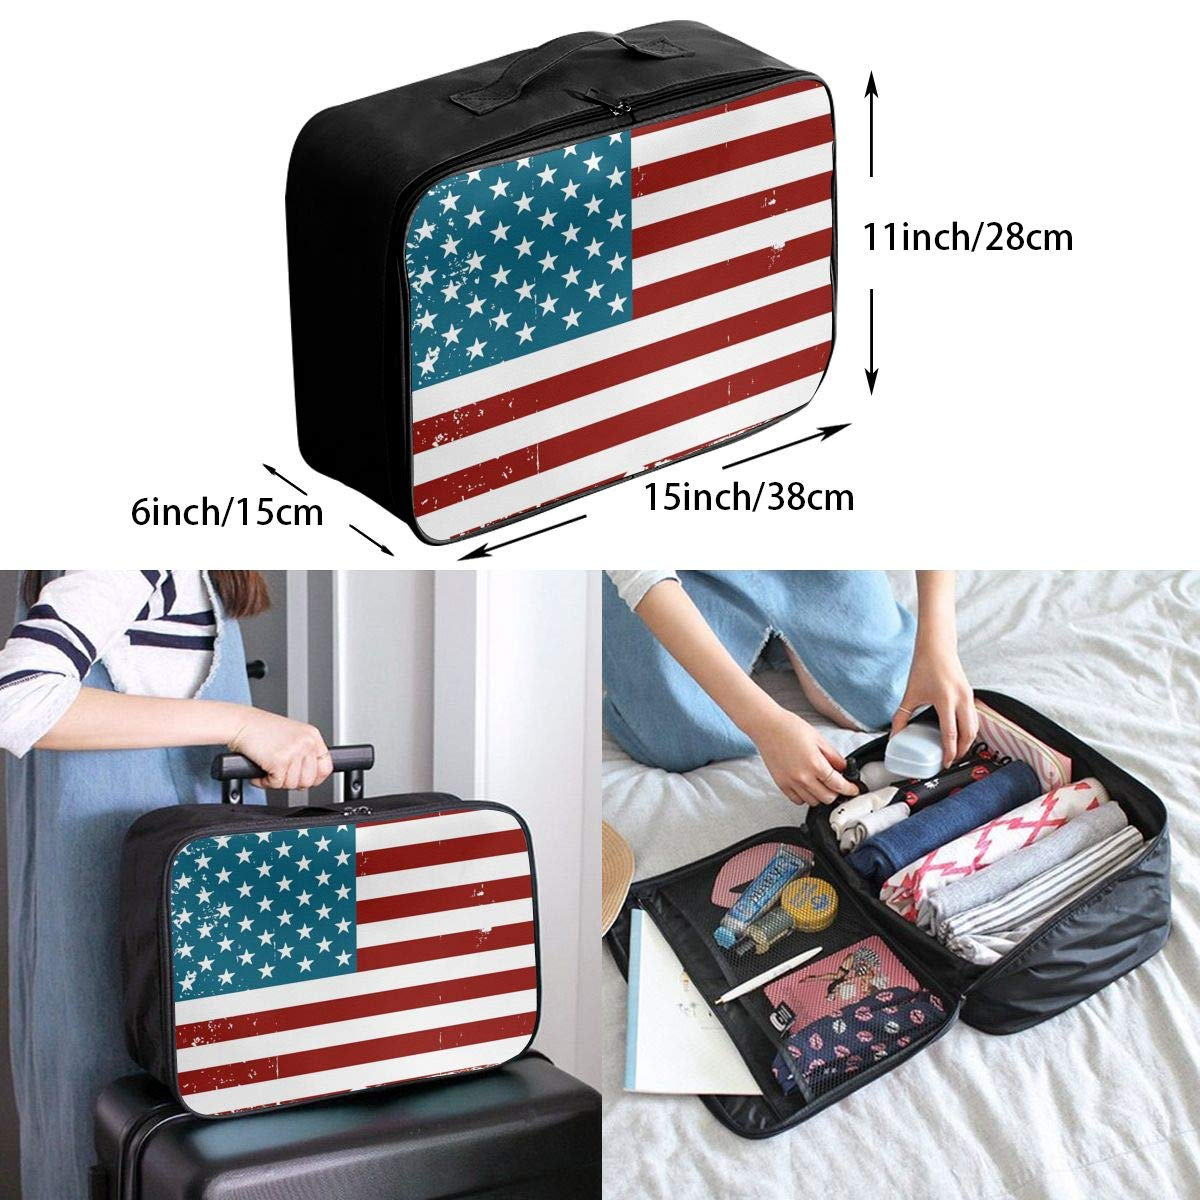 YueLJB American Flag Distressed Lightweight Large Capacity Portable Luggage Bag Travel Duffel Bag Storage Carry Luggage Duffle Tote Bag